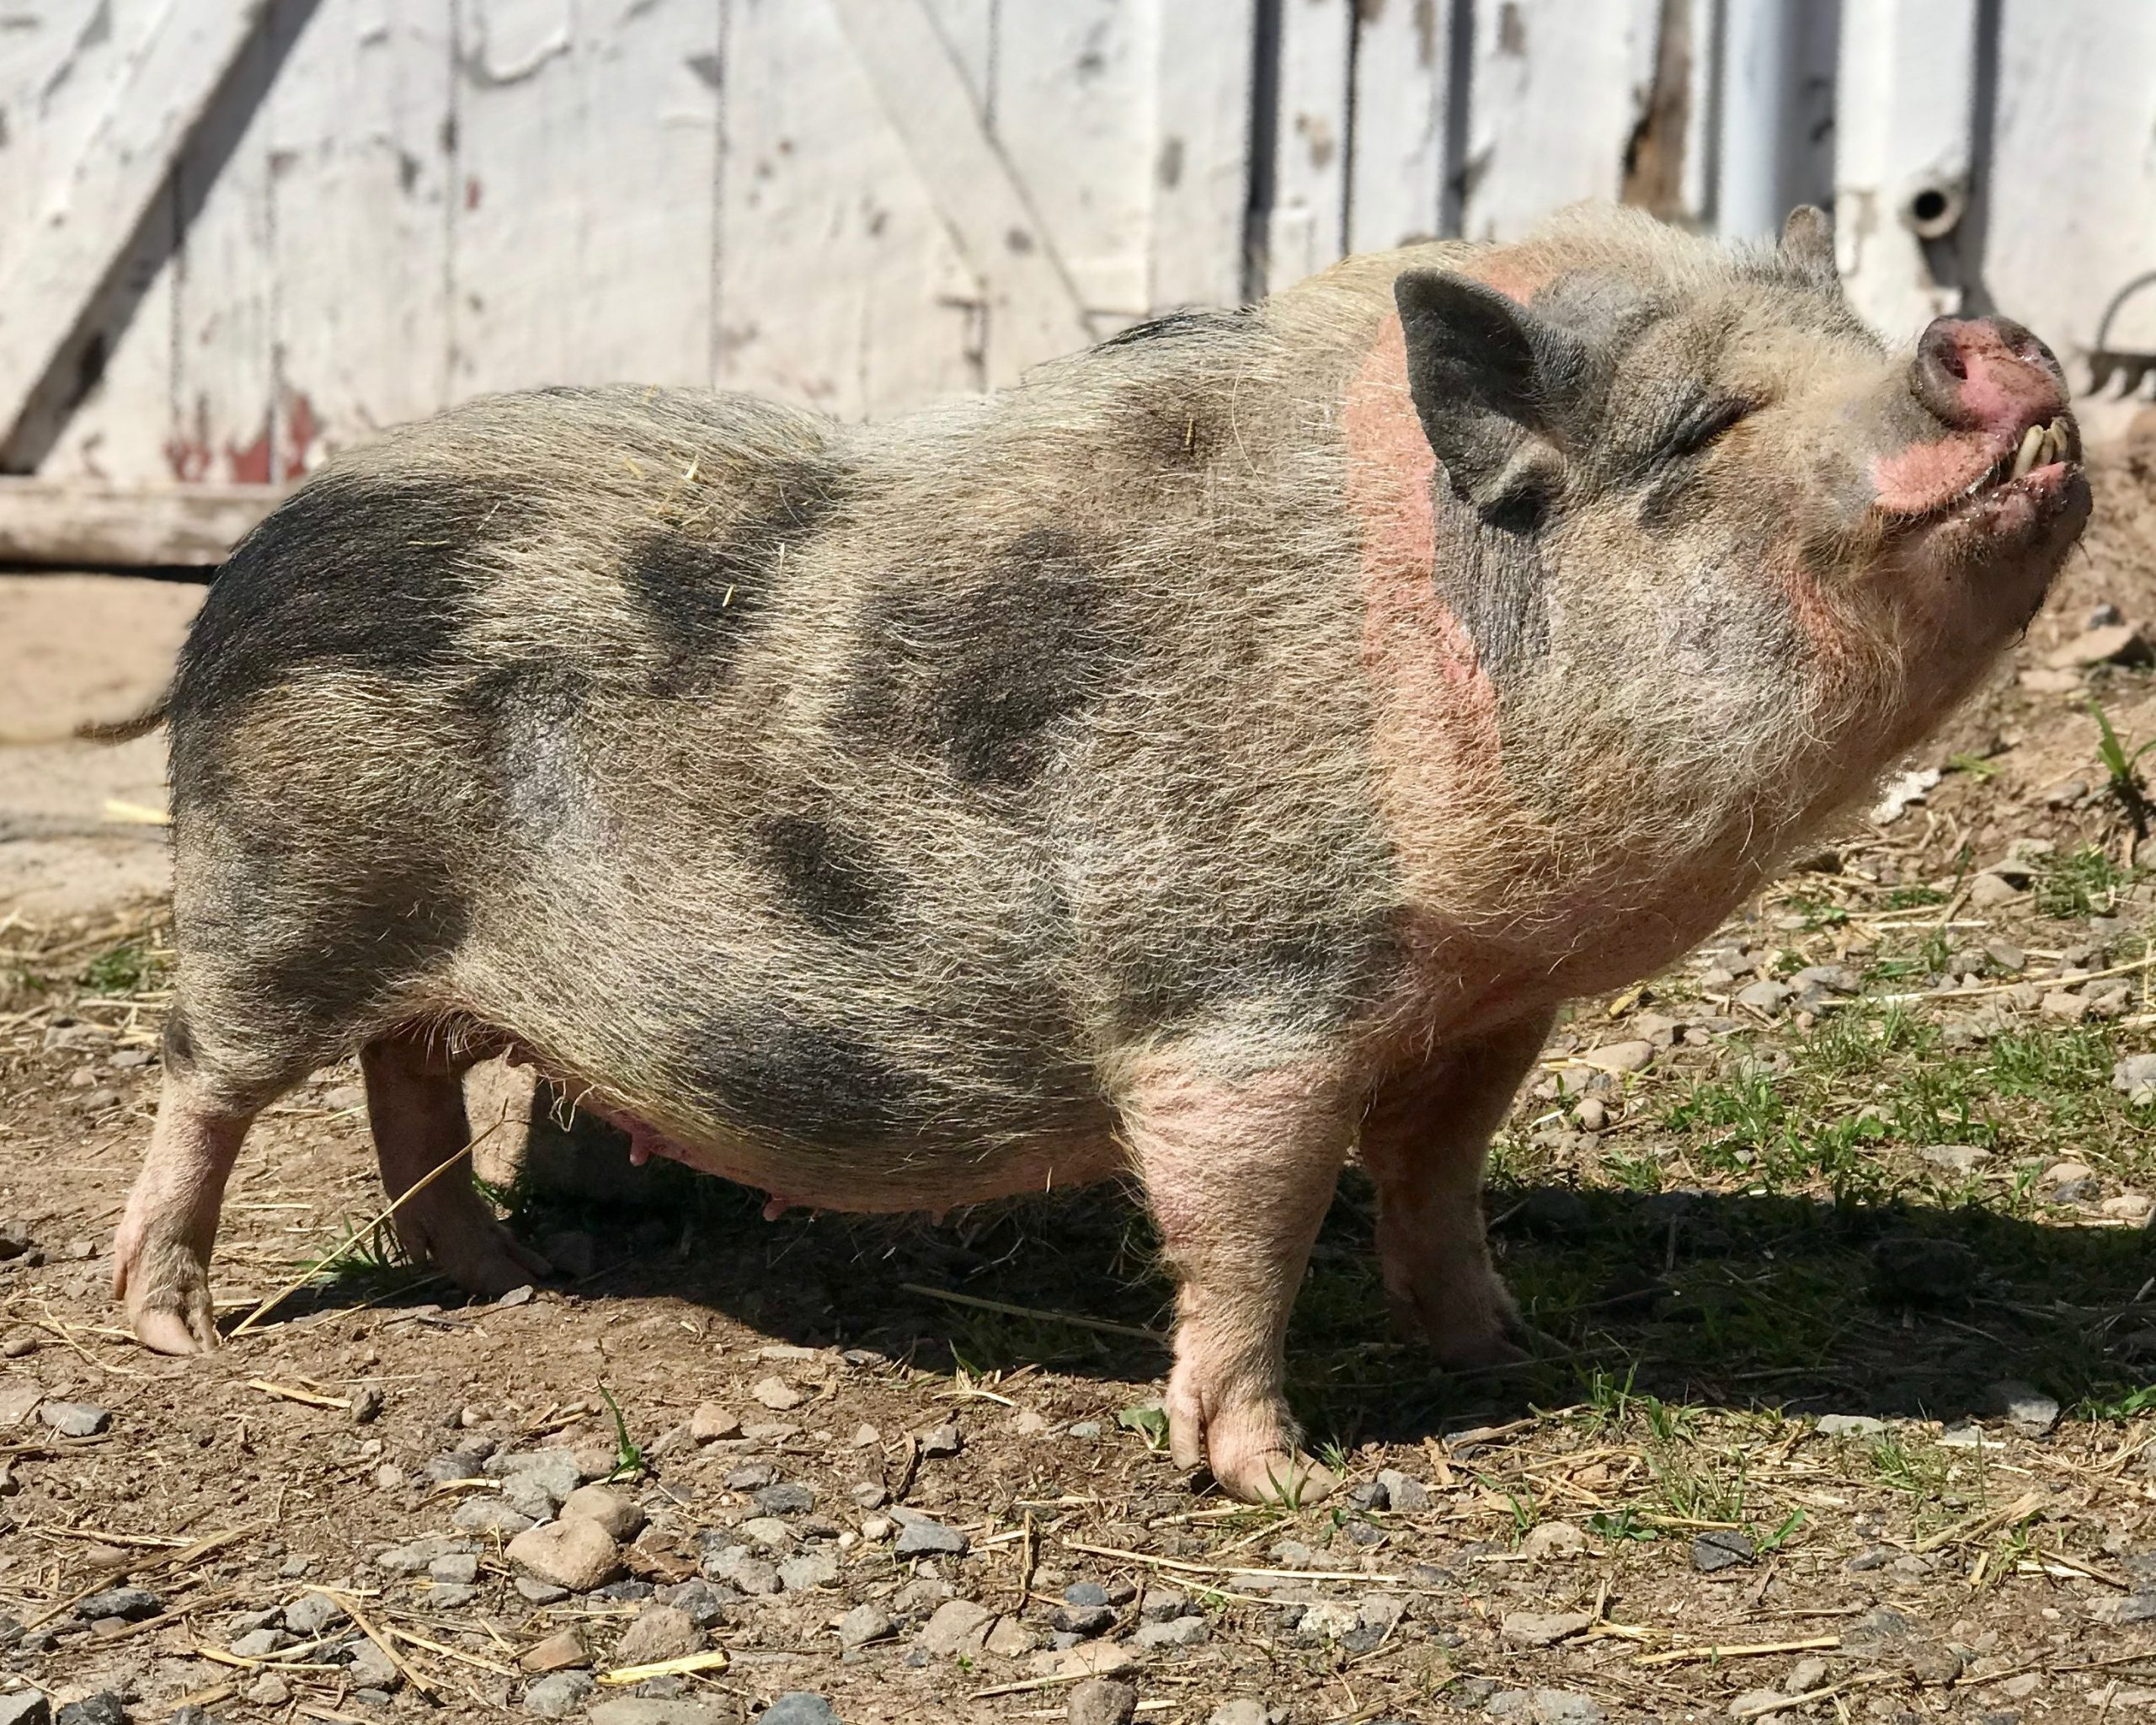 Princess the pig at Arthur's Acres Animal Sanctuary